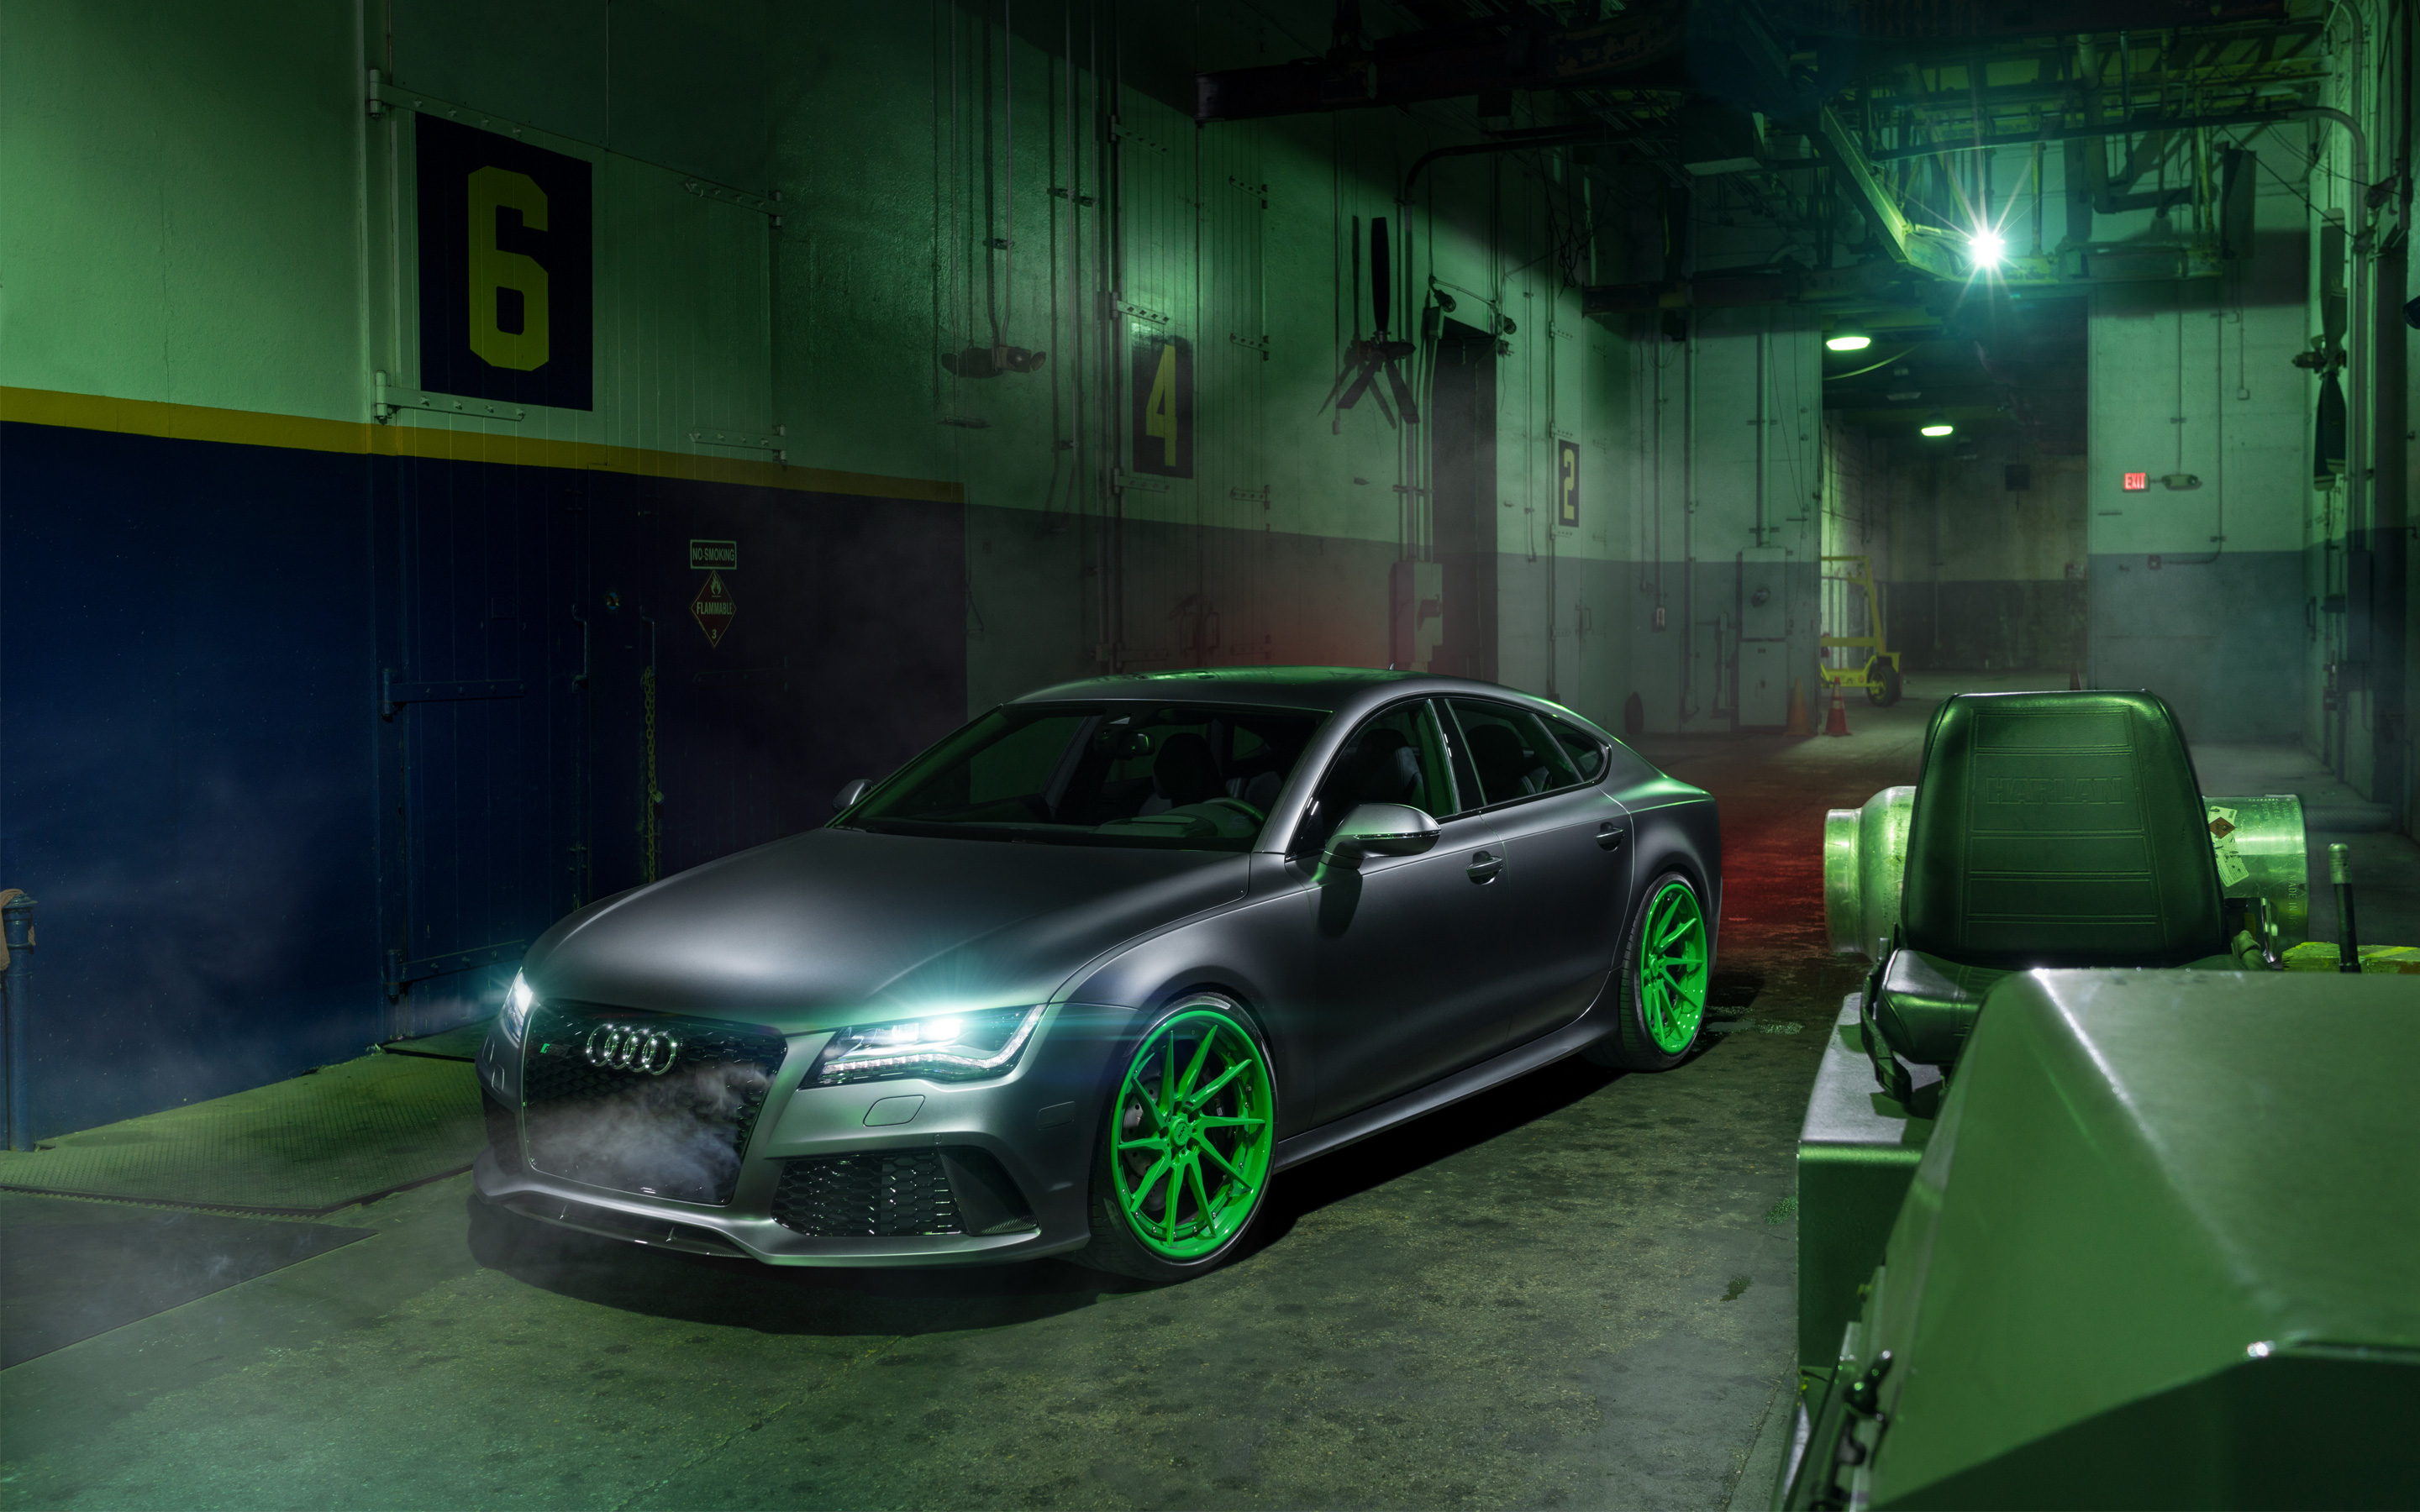 Adv1 Audi Rs7 Wallpaper Hd Car Wallpapers